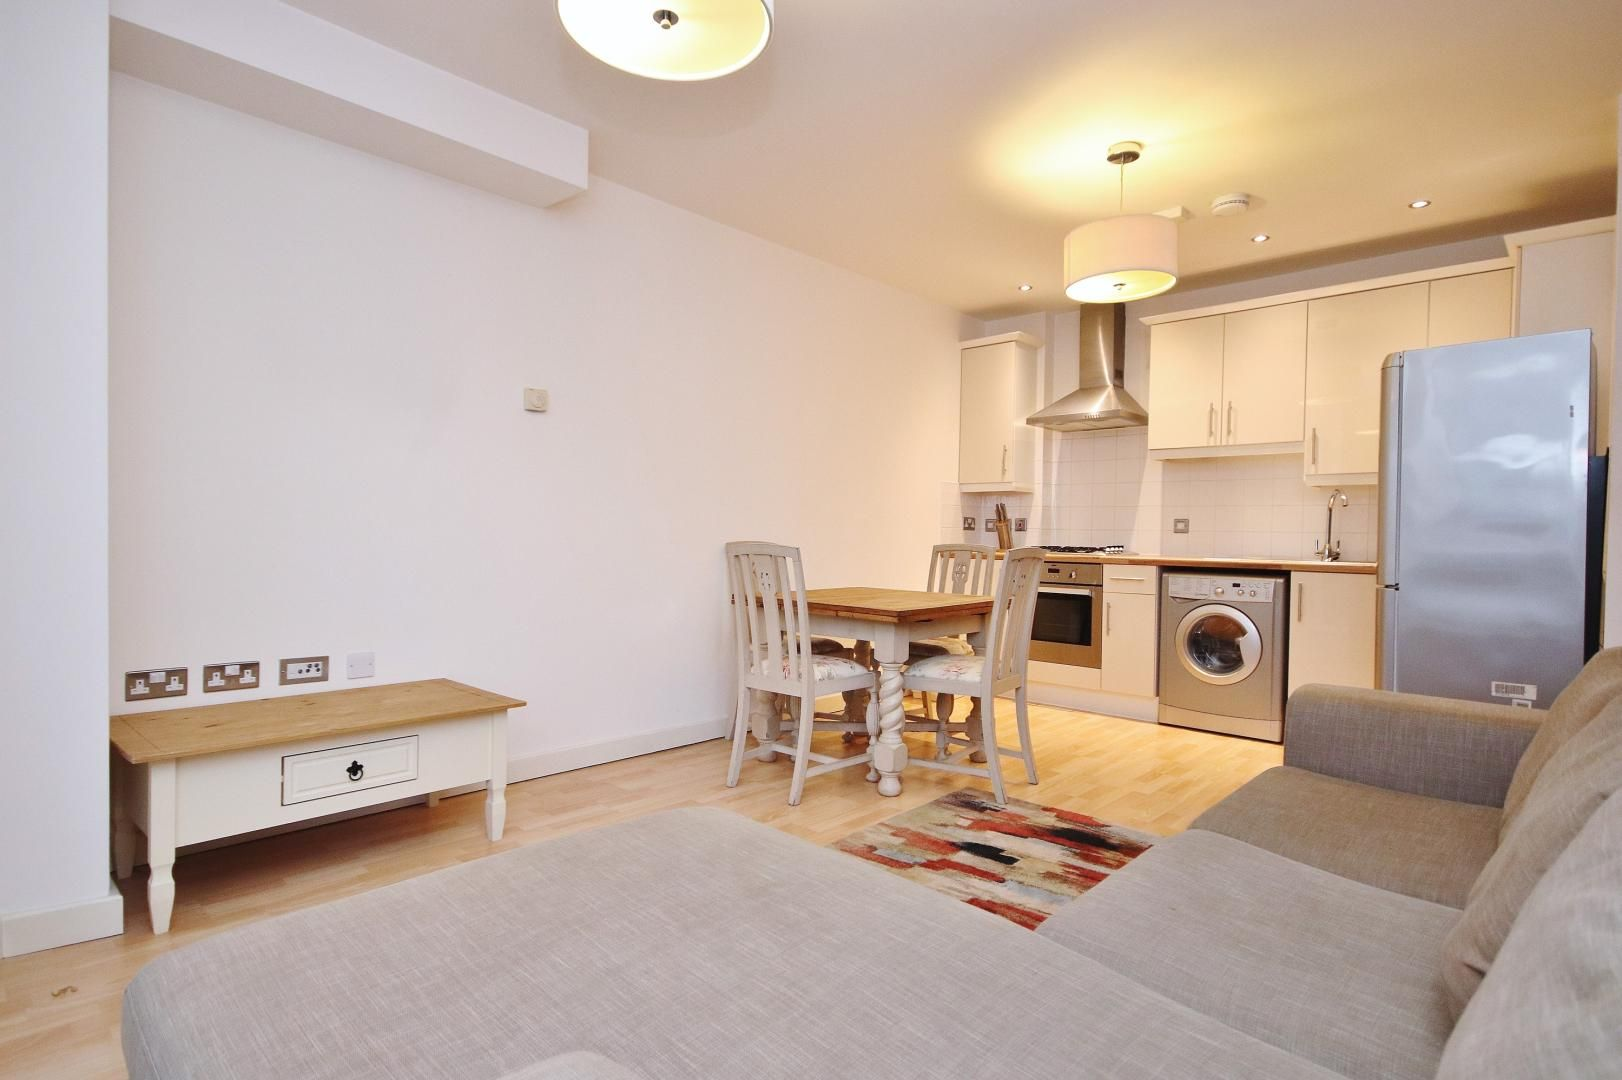 1 bed flat to rent in Pengelly Apartments, E14